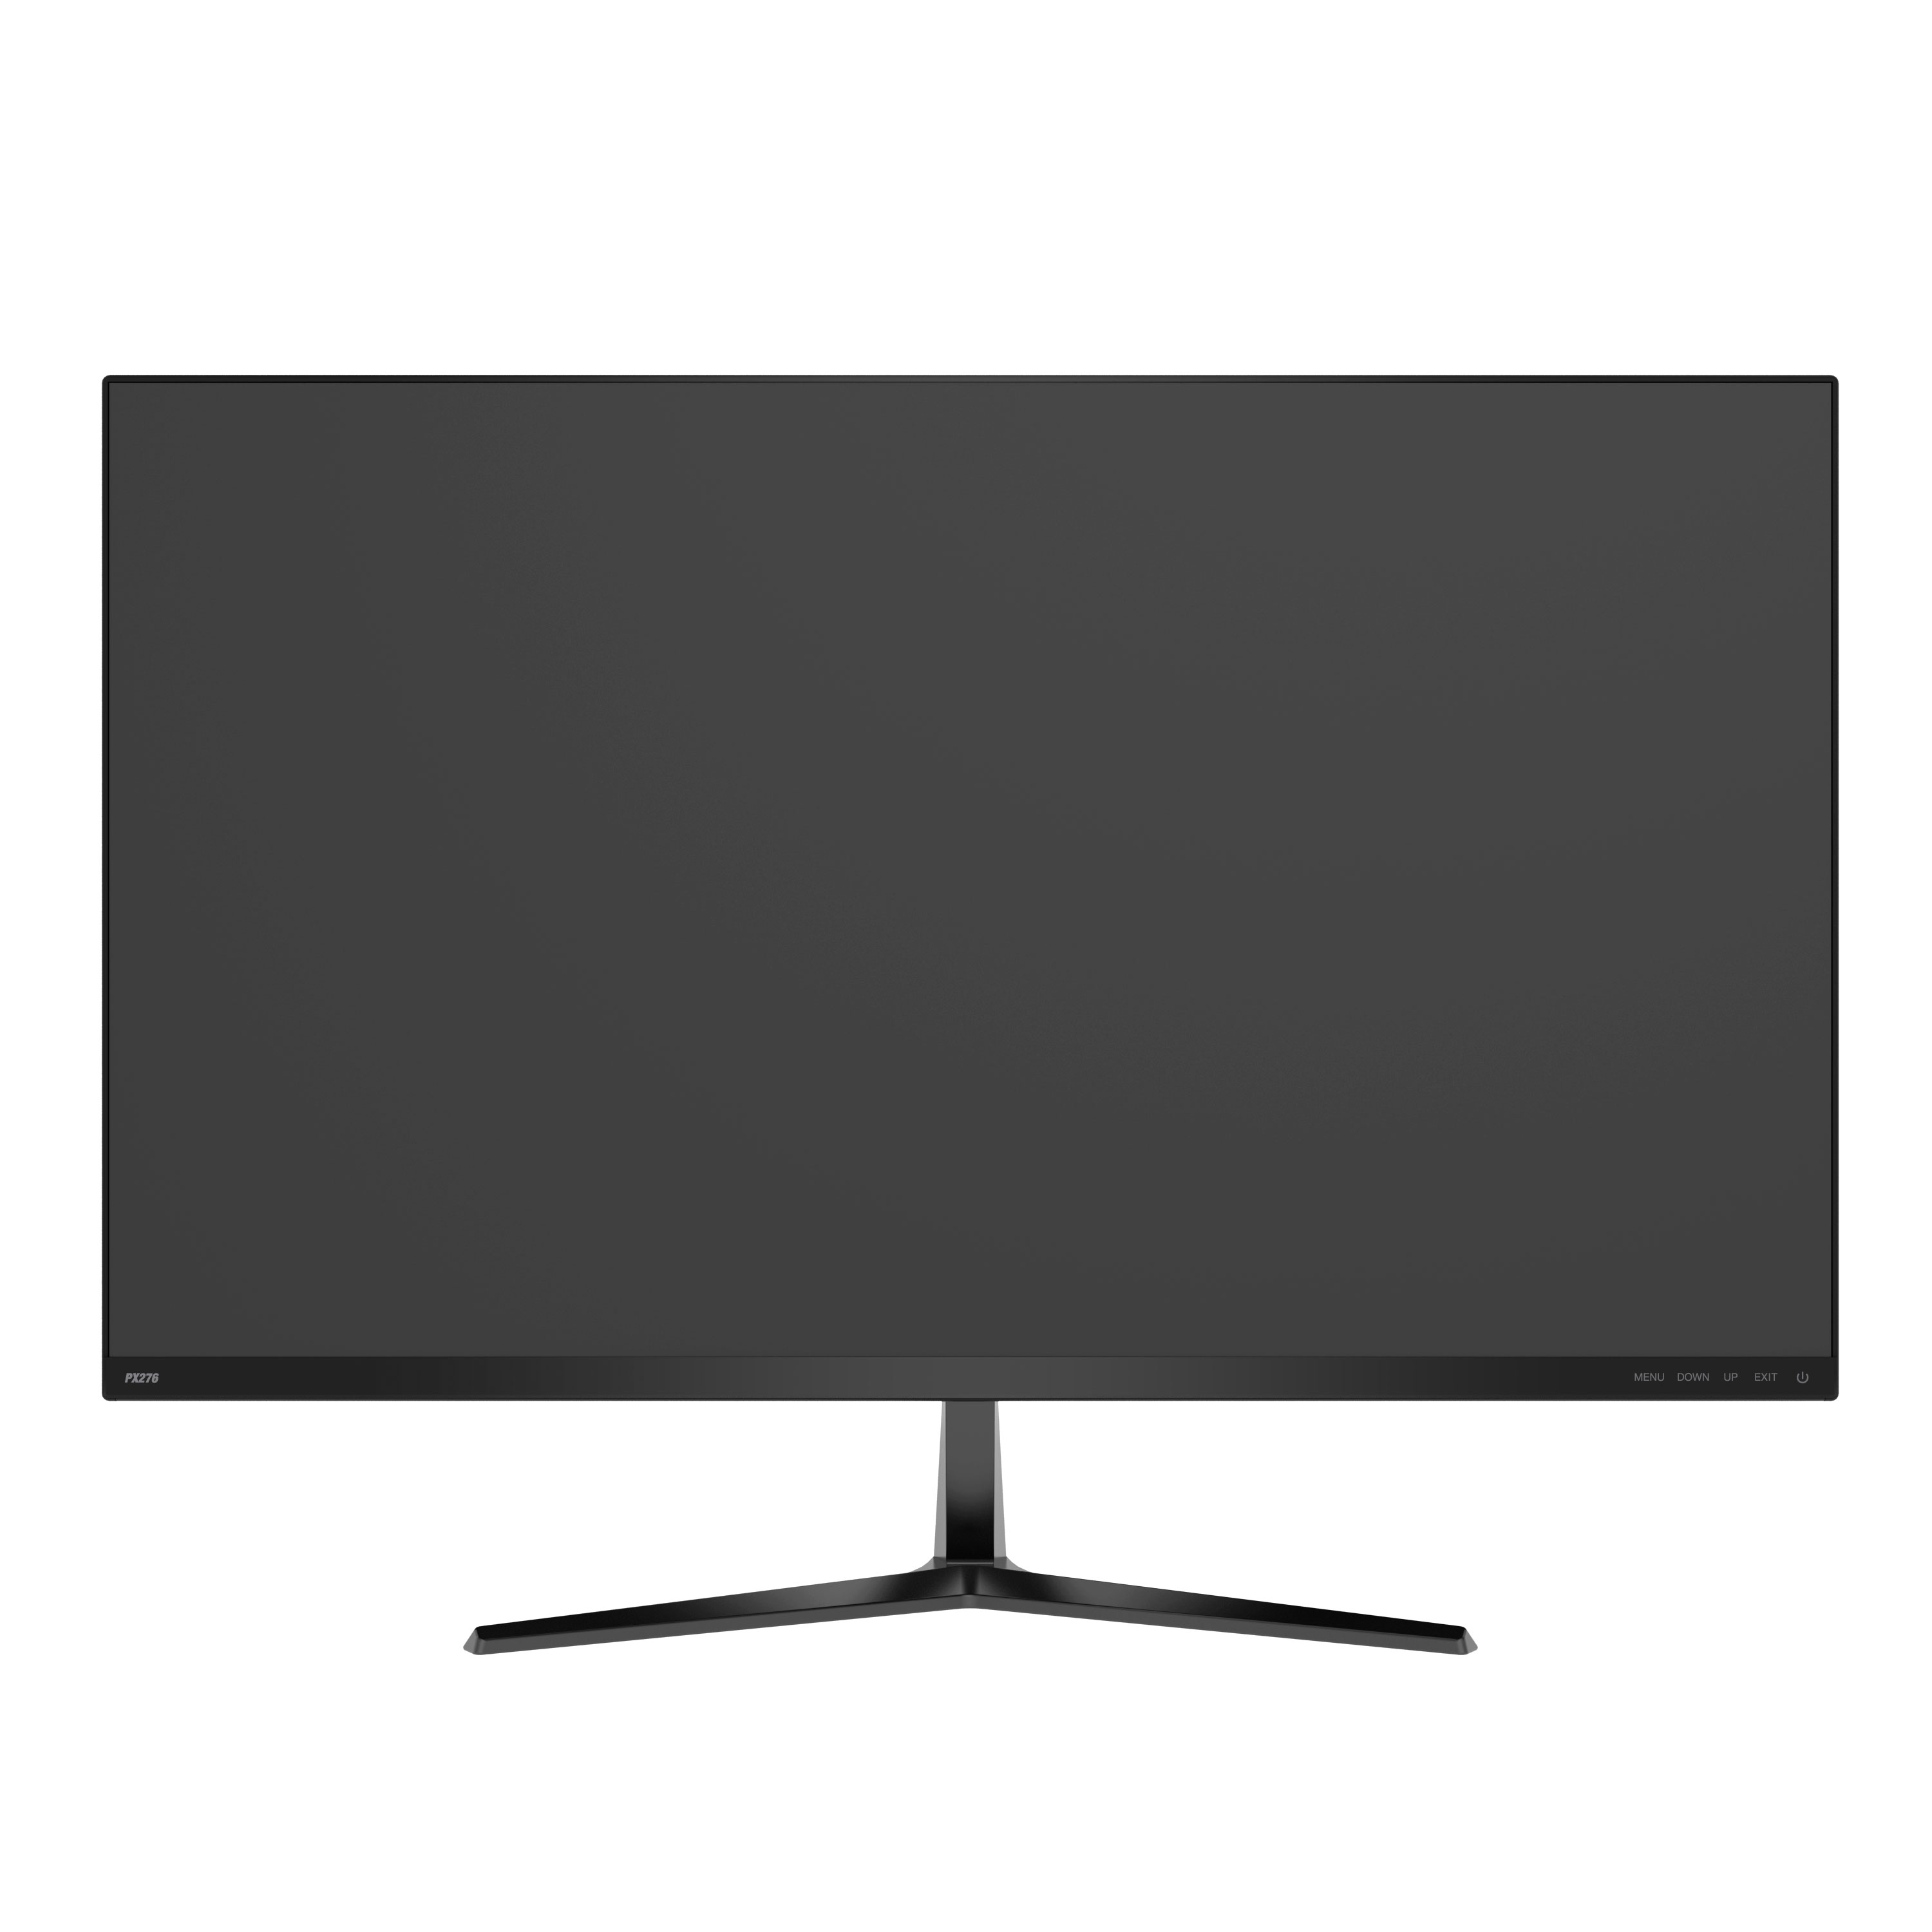 Pixio USA | PX276 27 inch 1440p 144hz 1ms Flat Gaming Monitor